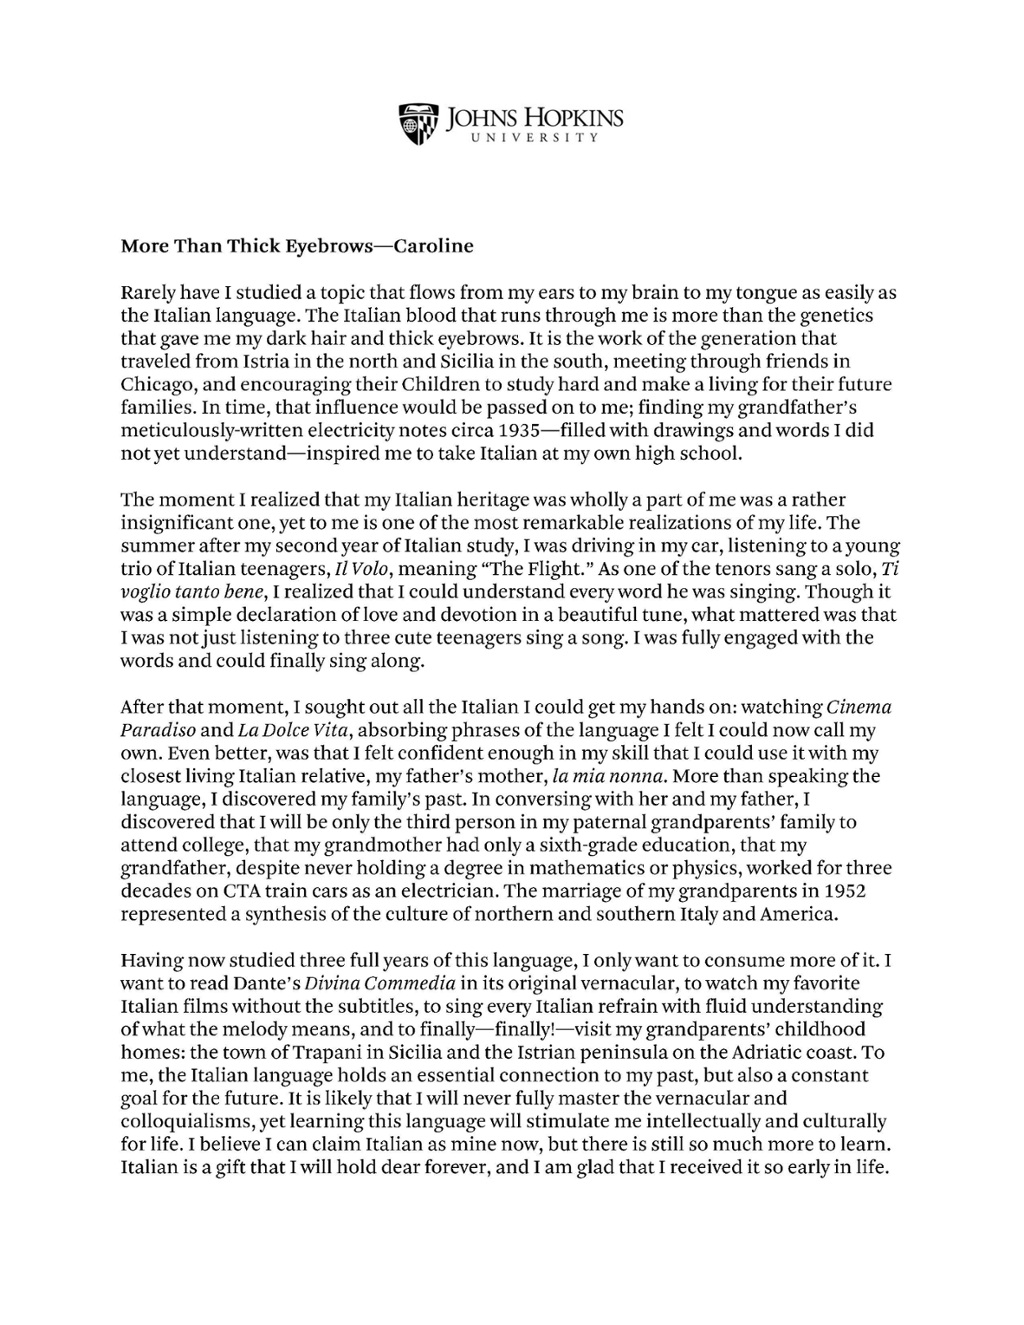 best of essays Top 147 successful college essays get into the college of your dreams we hope these essays inspire you as you write your own personal statement.